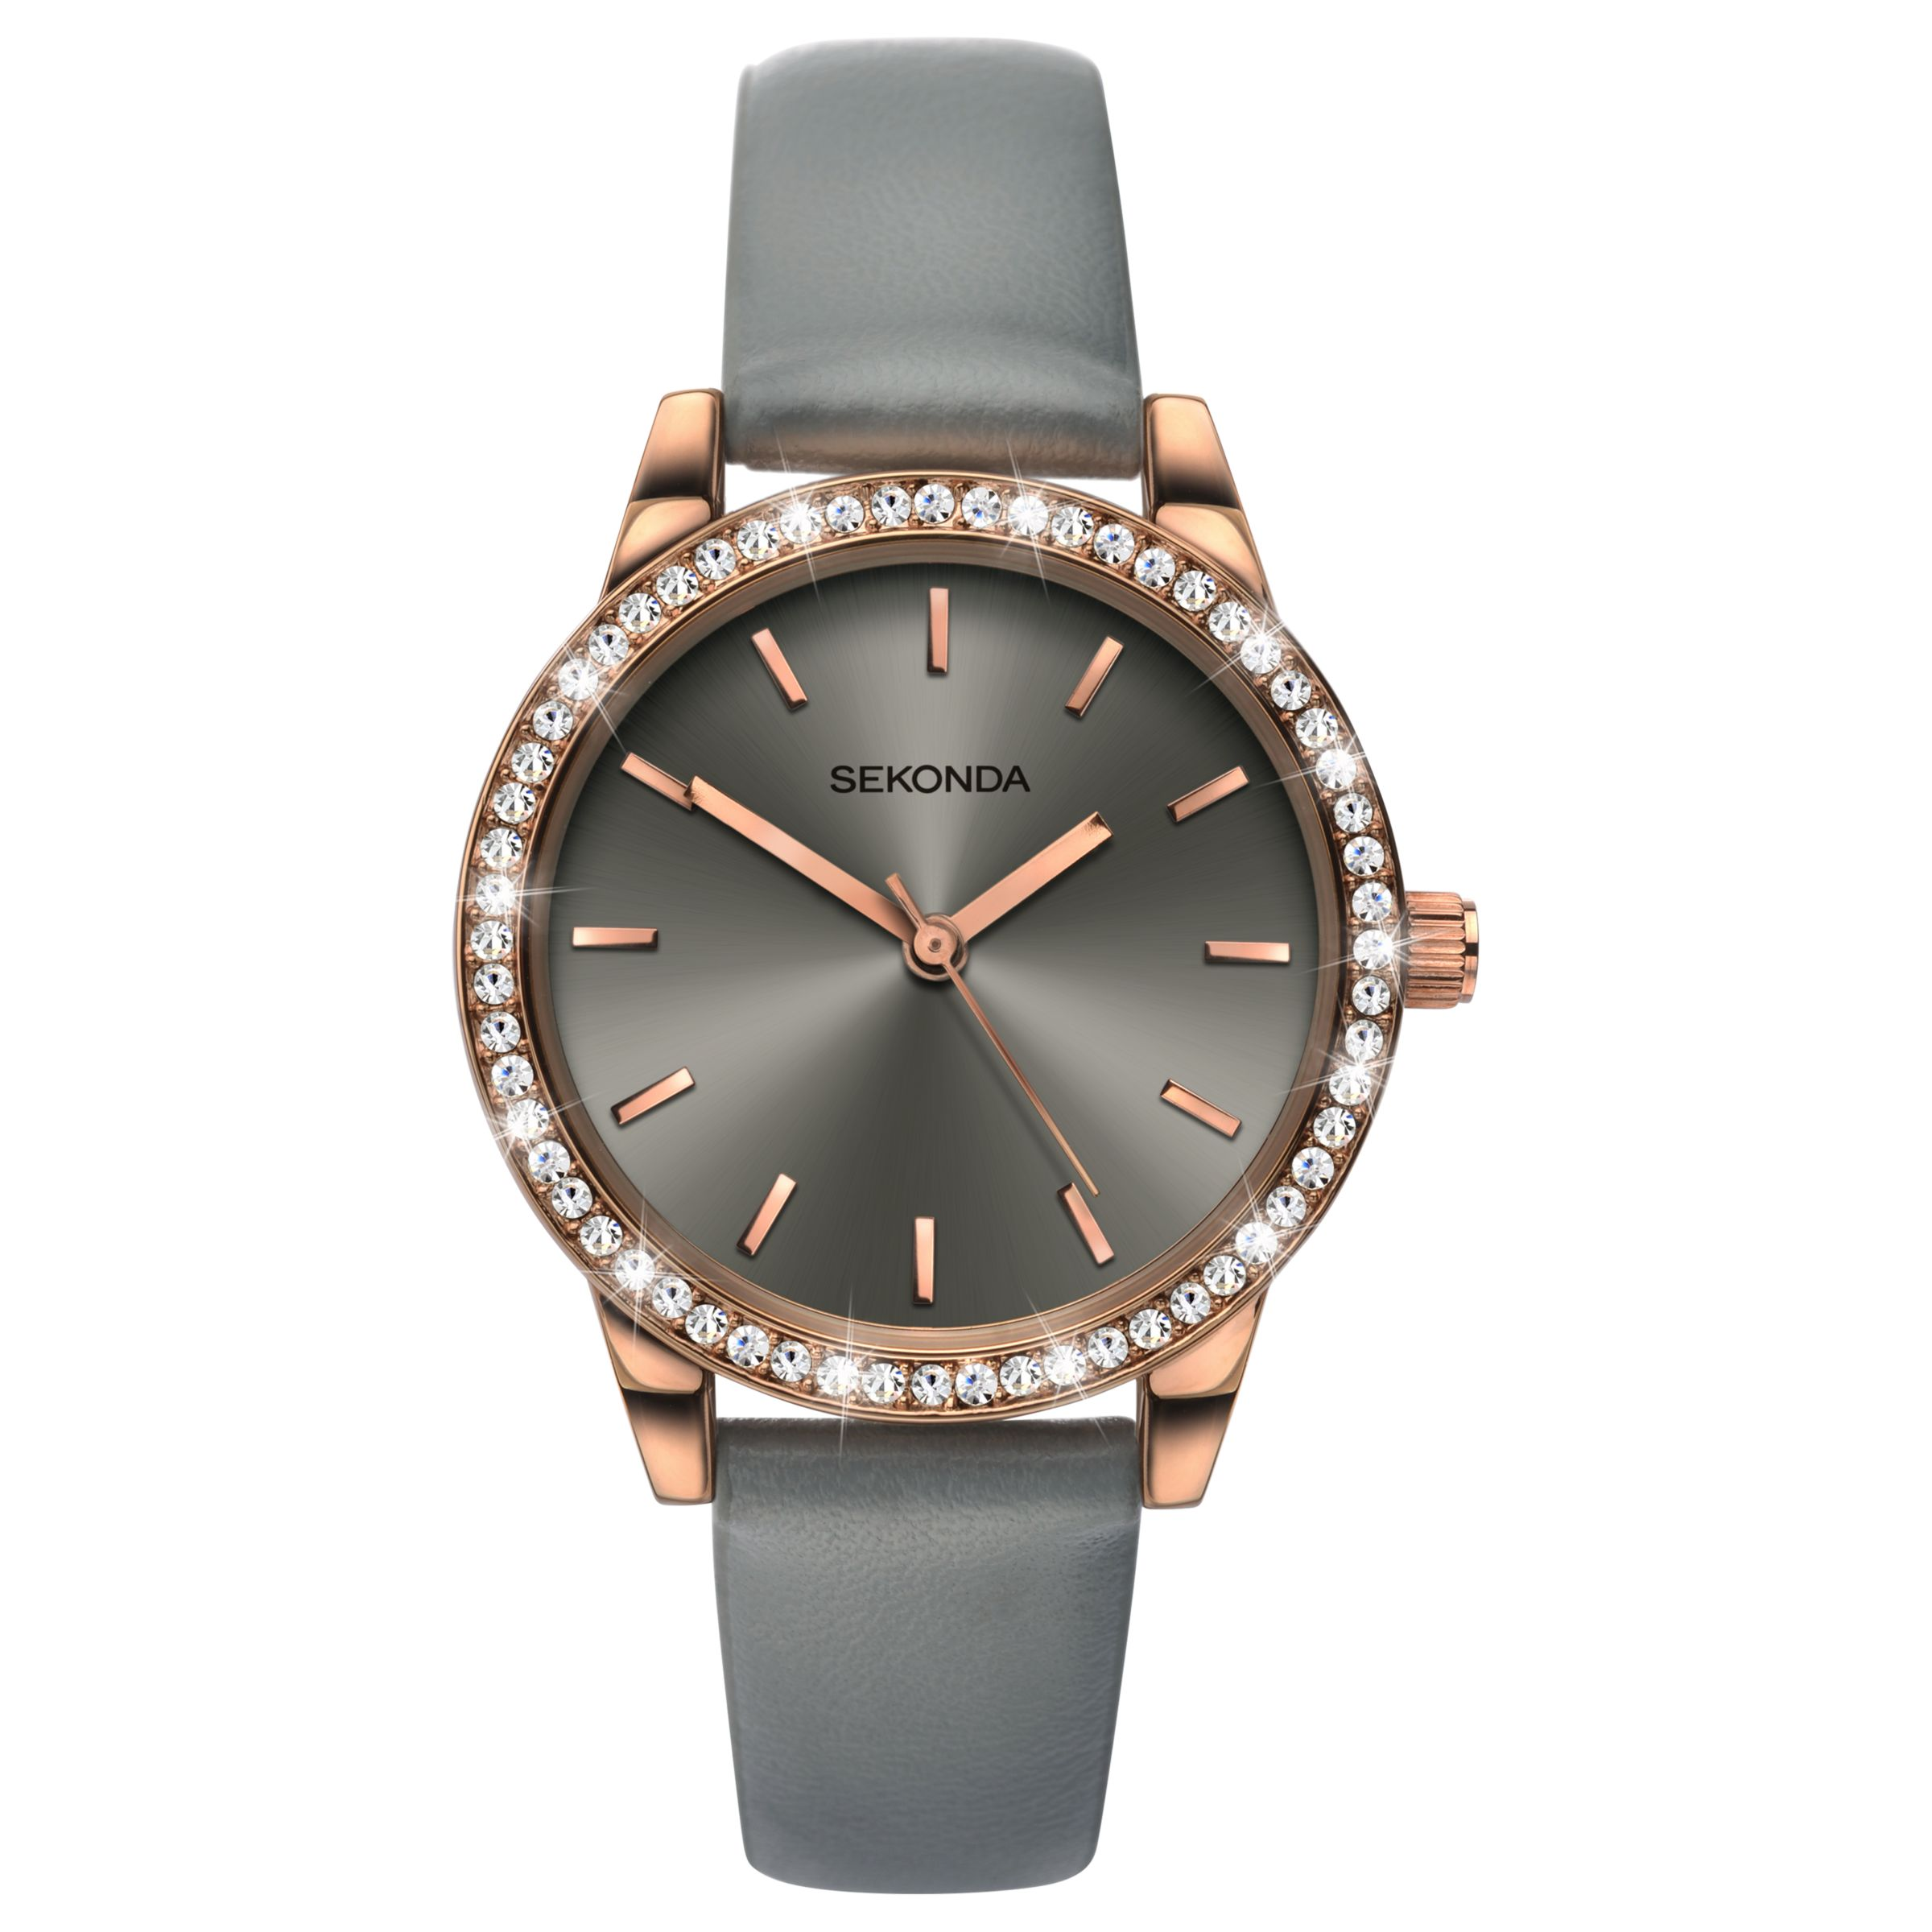 Sekonda Sekonda Women's Crystal Leather Look Strap Watch